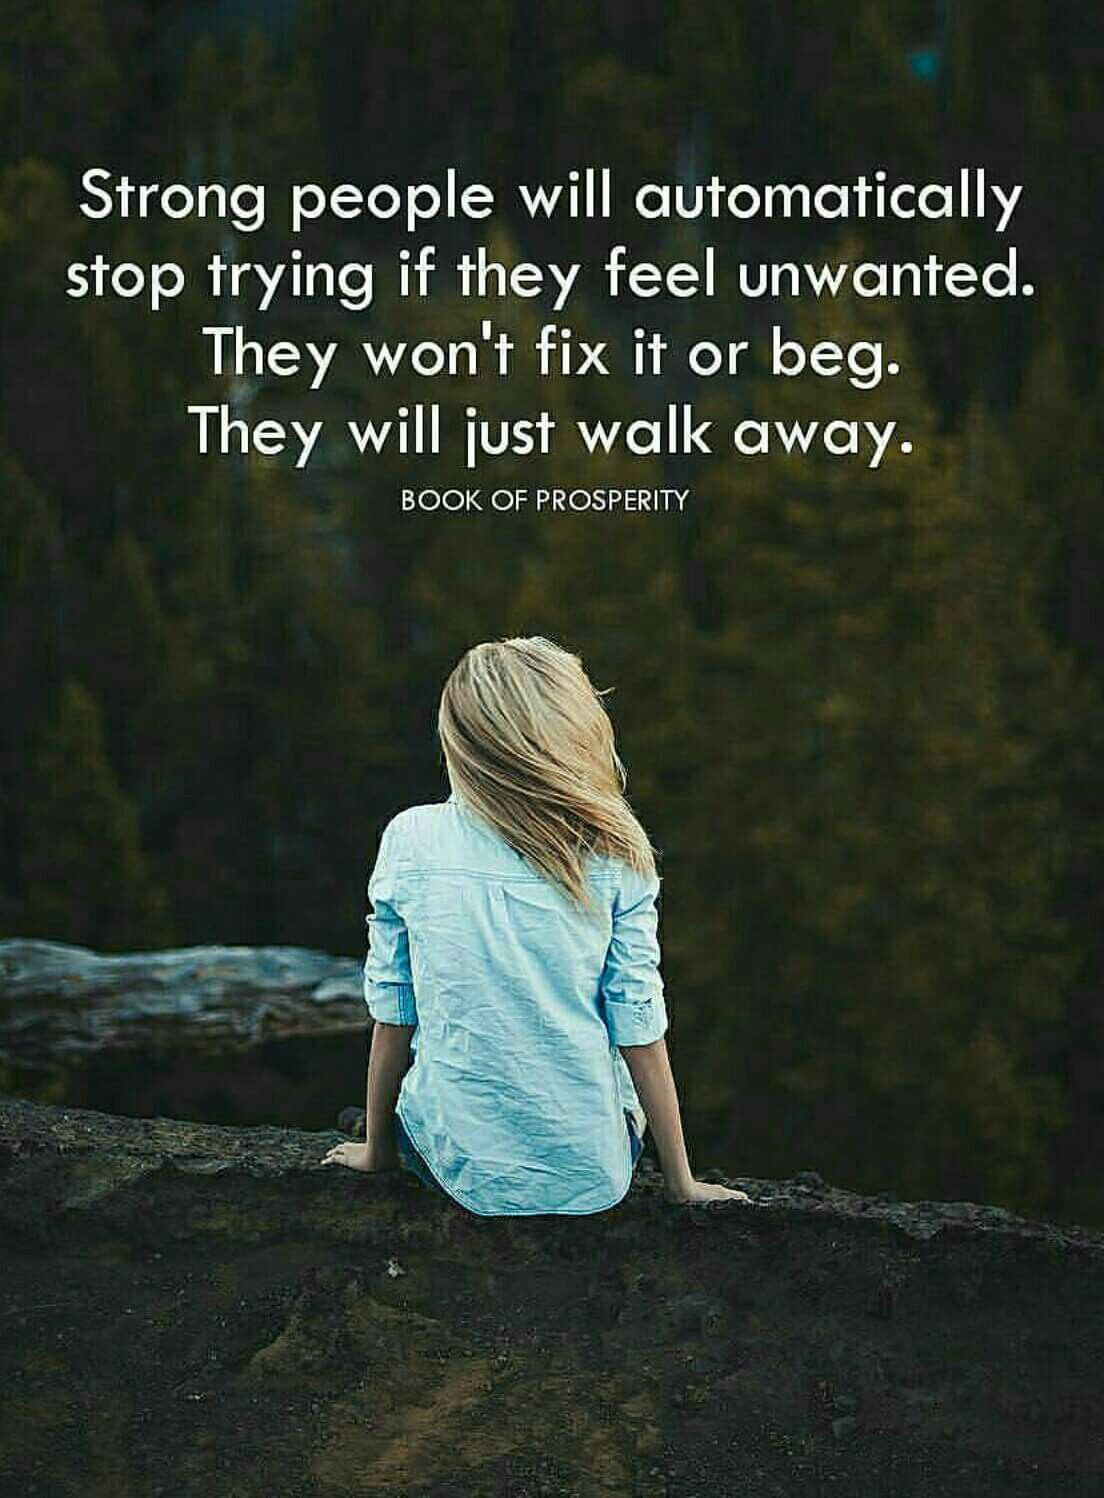 Strong people will automatically stop trying if they feel unwanted